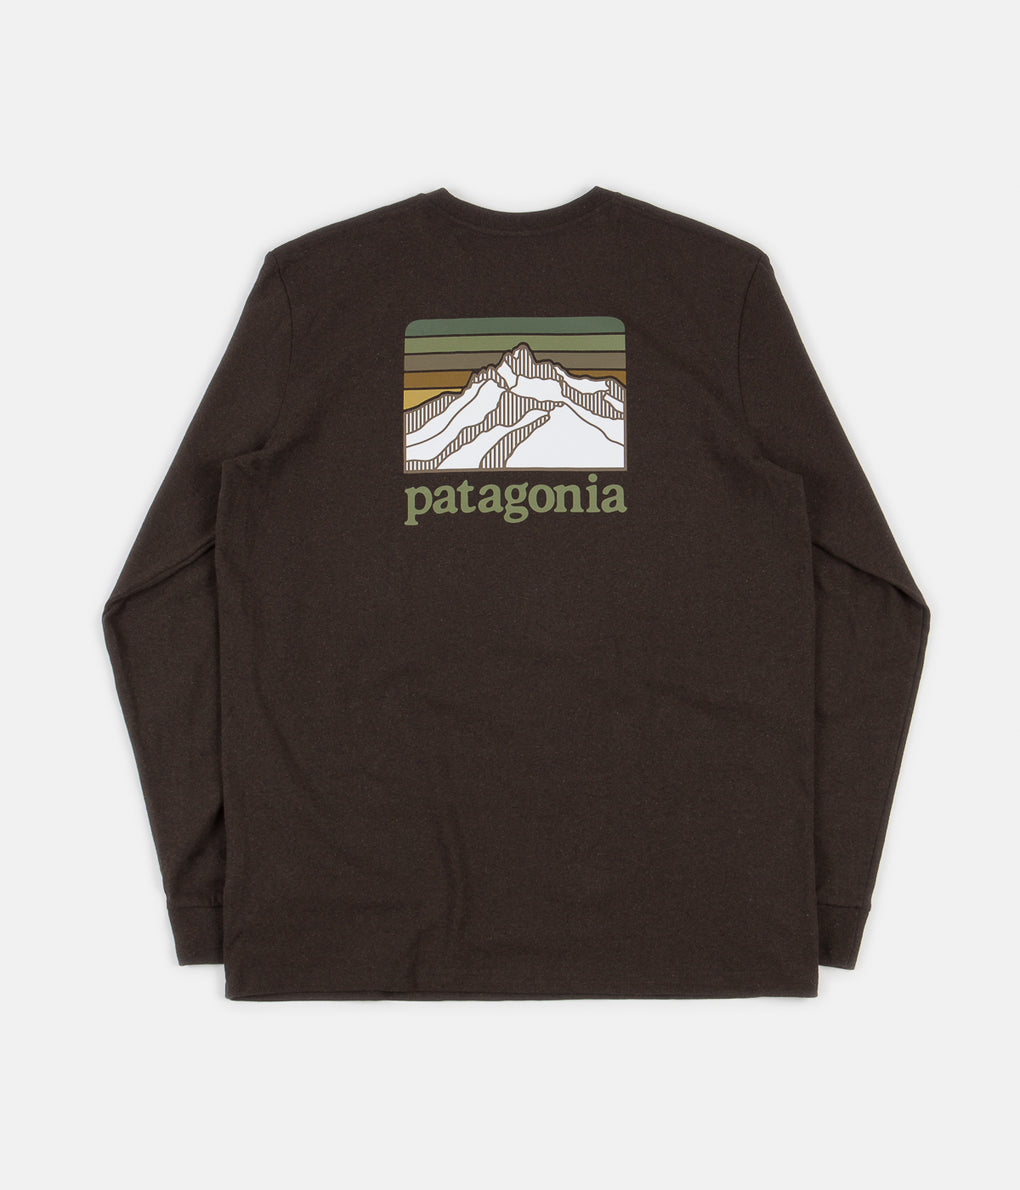 Patagonia Line Logo Ridge Responsibili-Tee Long Sleeve T-Shirt - Logwood Brown